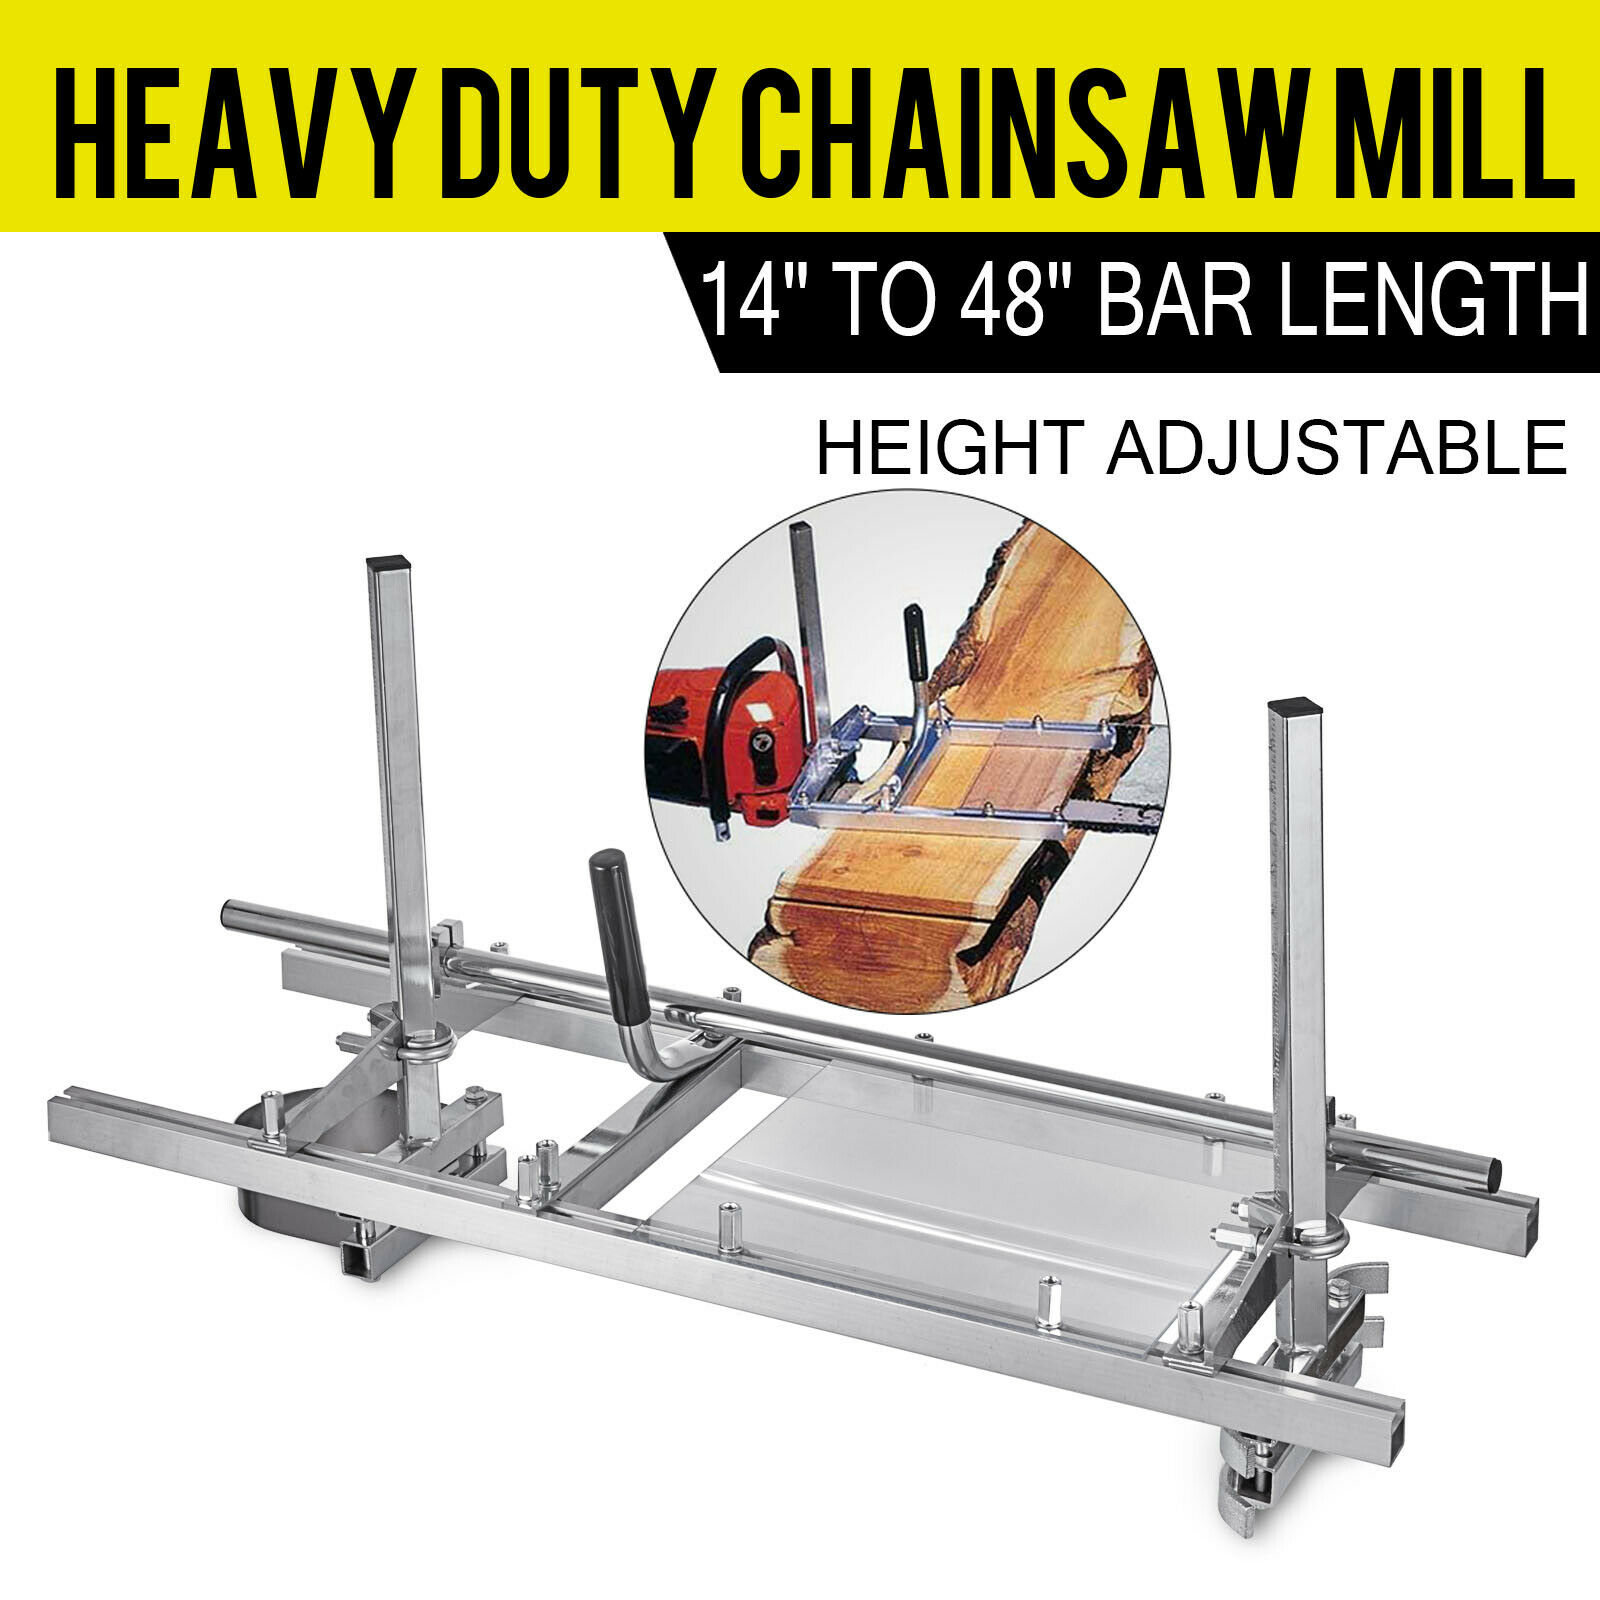 Chainsaw Mill Planking Milling 48 Inch Wood DIY Tools Guide Bar Wood Lumber Cutting Portable Sawmill Aluminum Steel Chain Mill